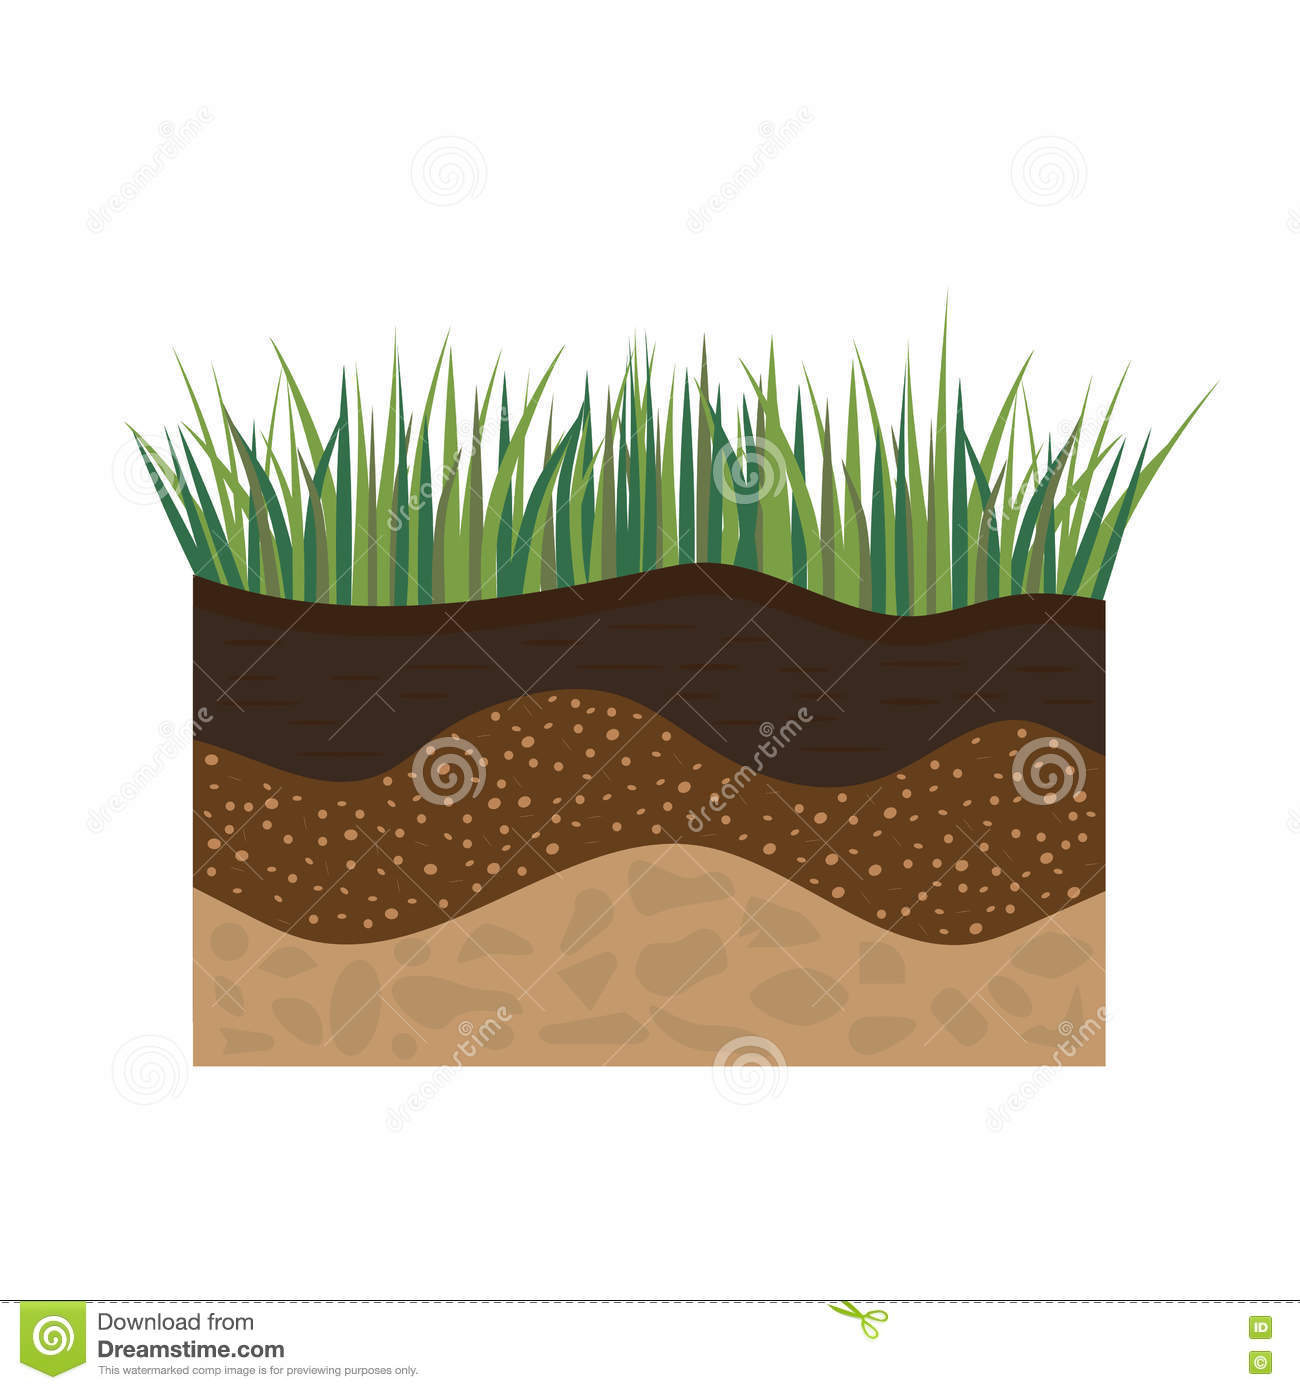 Soil profile with grass stock vector. Illustration of ...